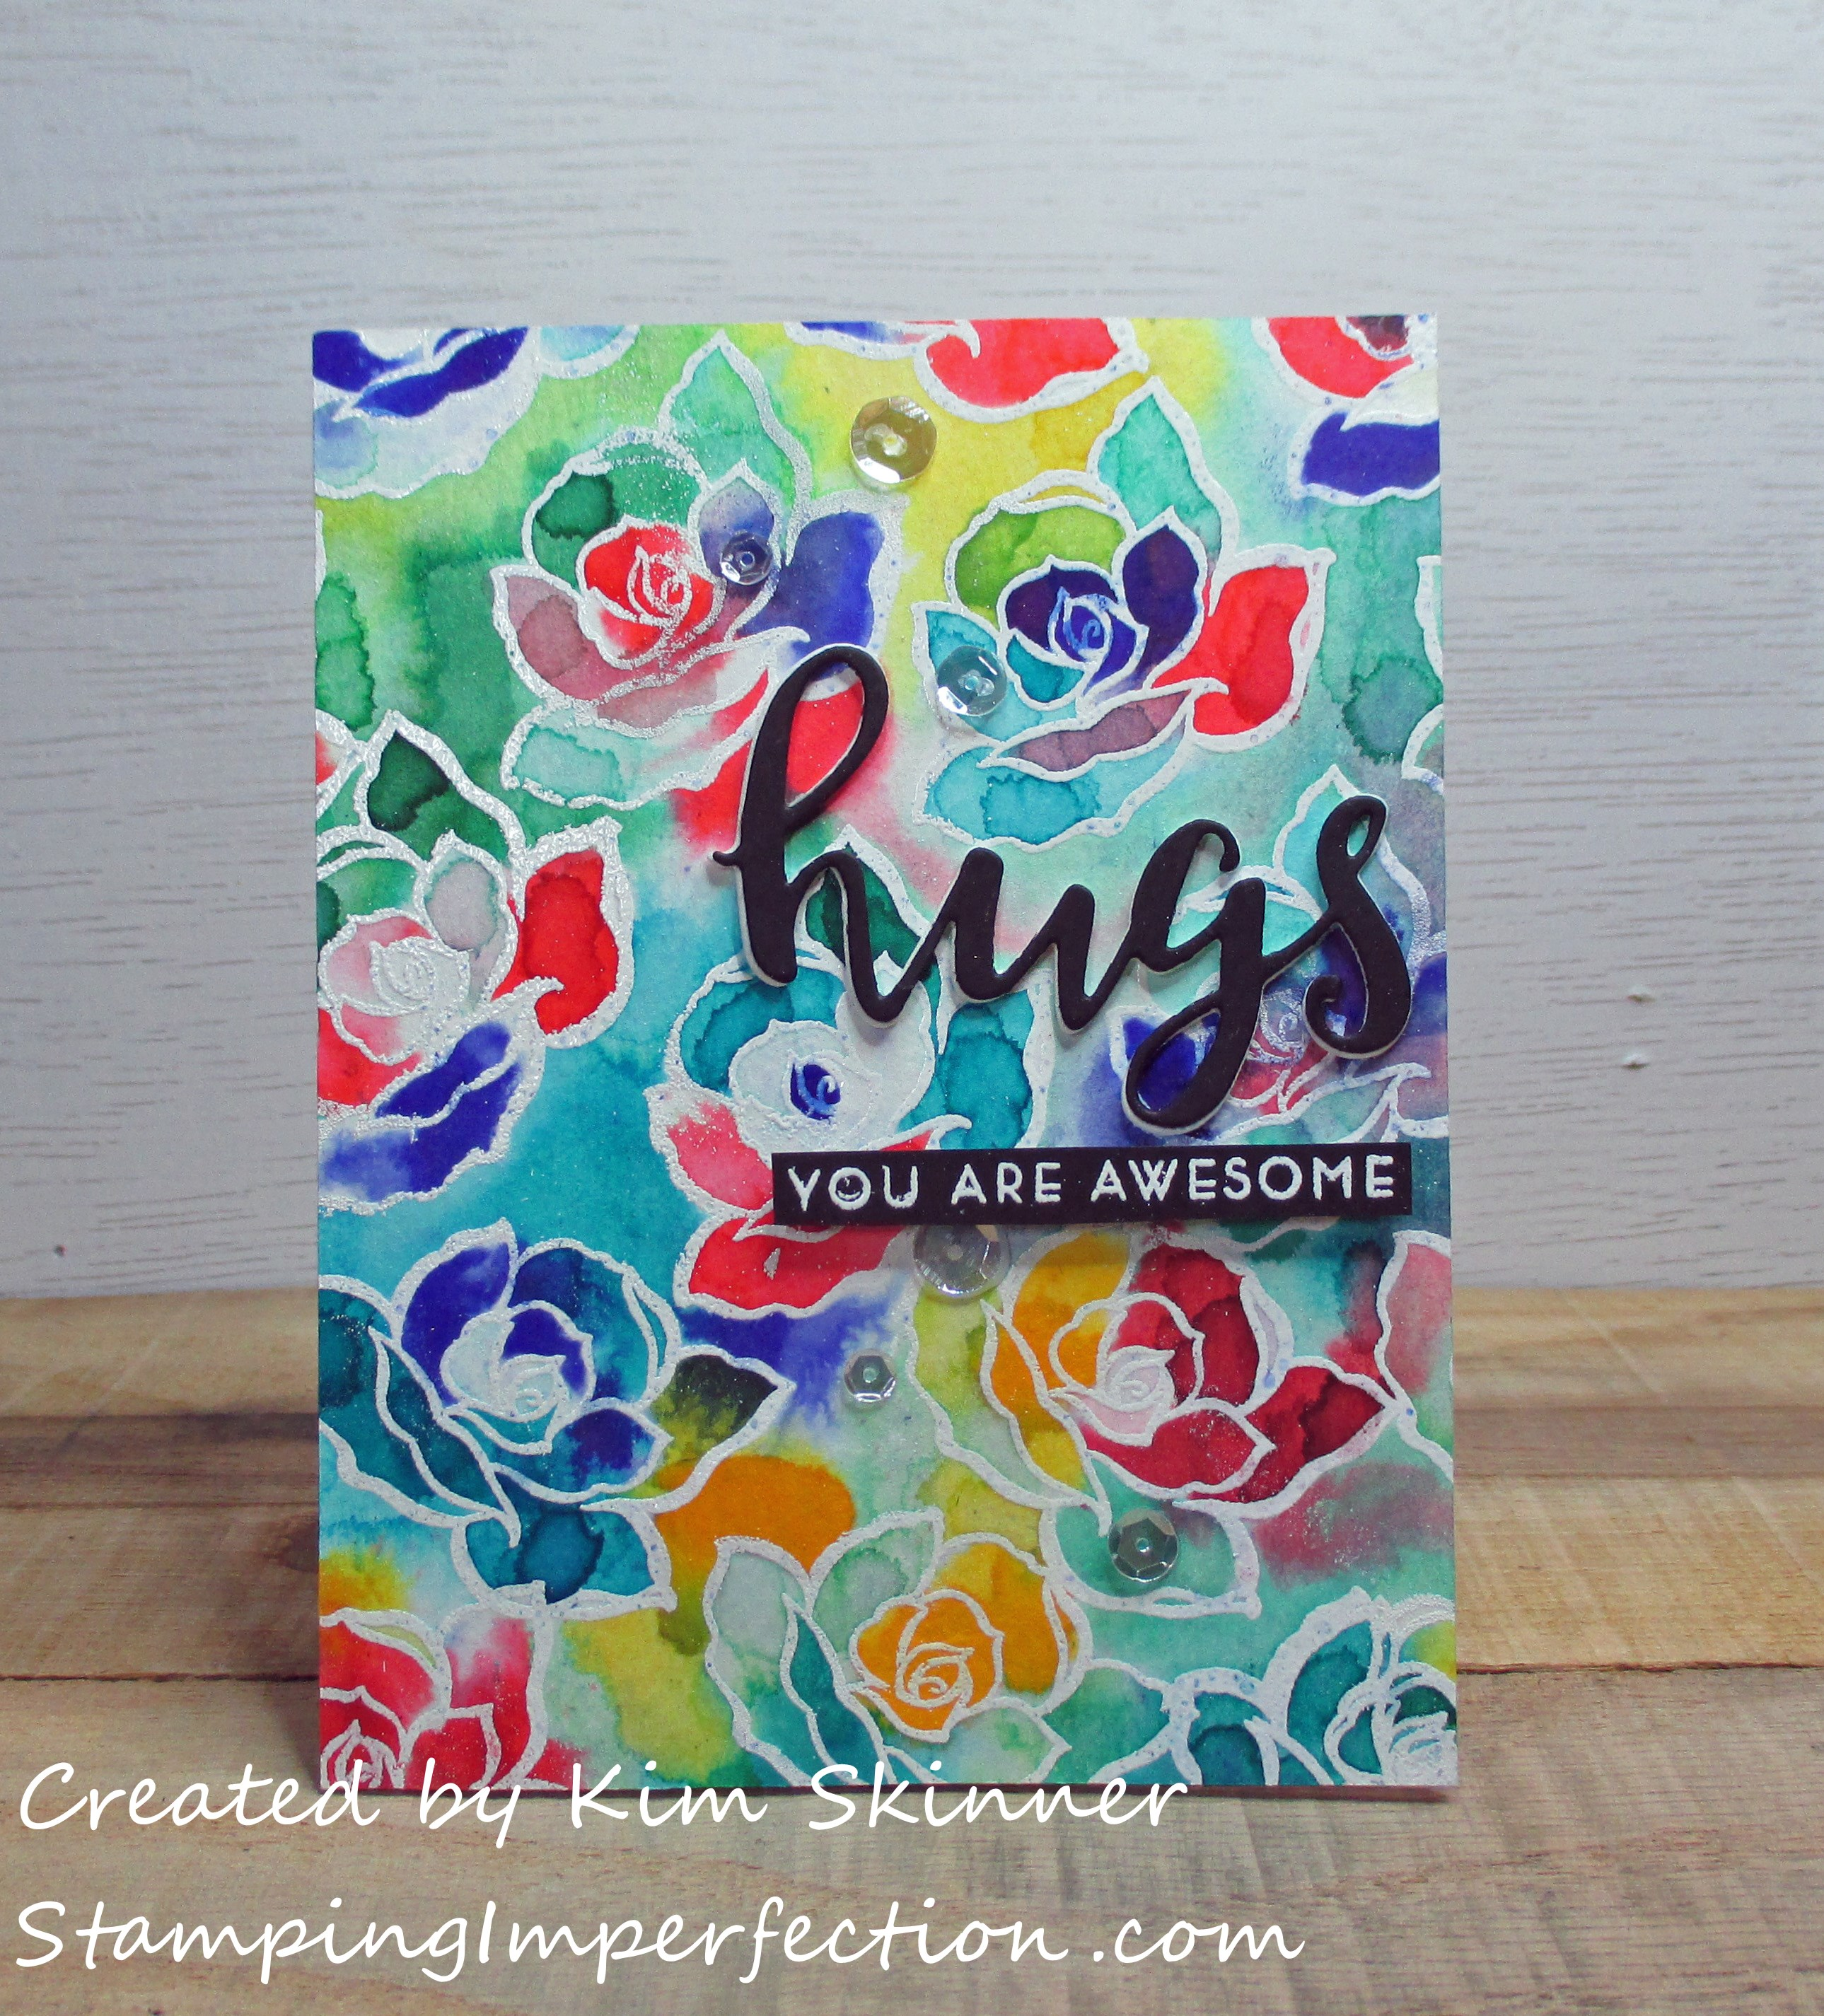 Stamping Imperfection Creative Watercolor Media